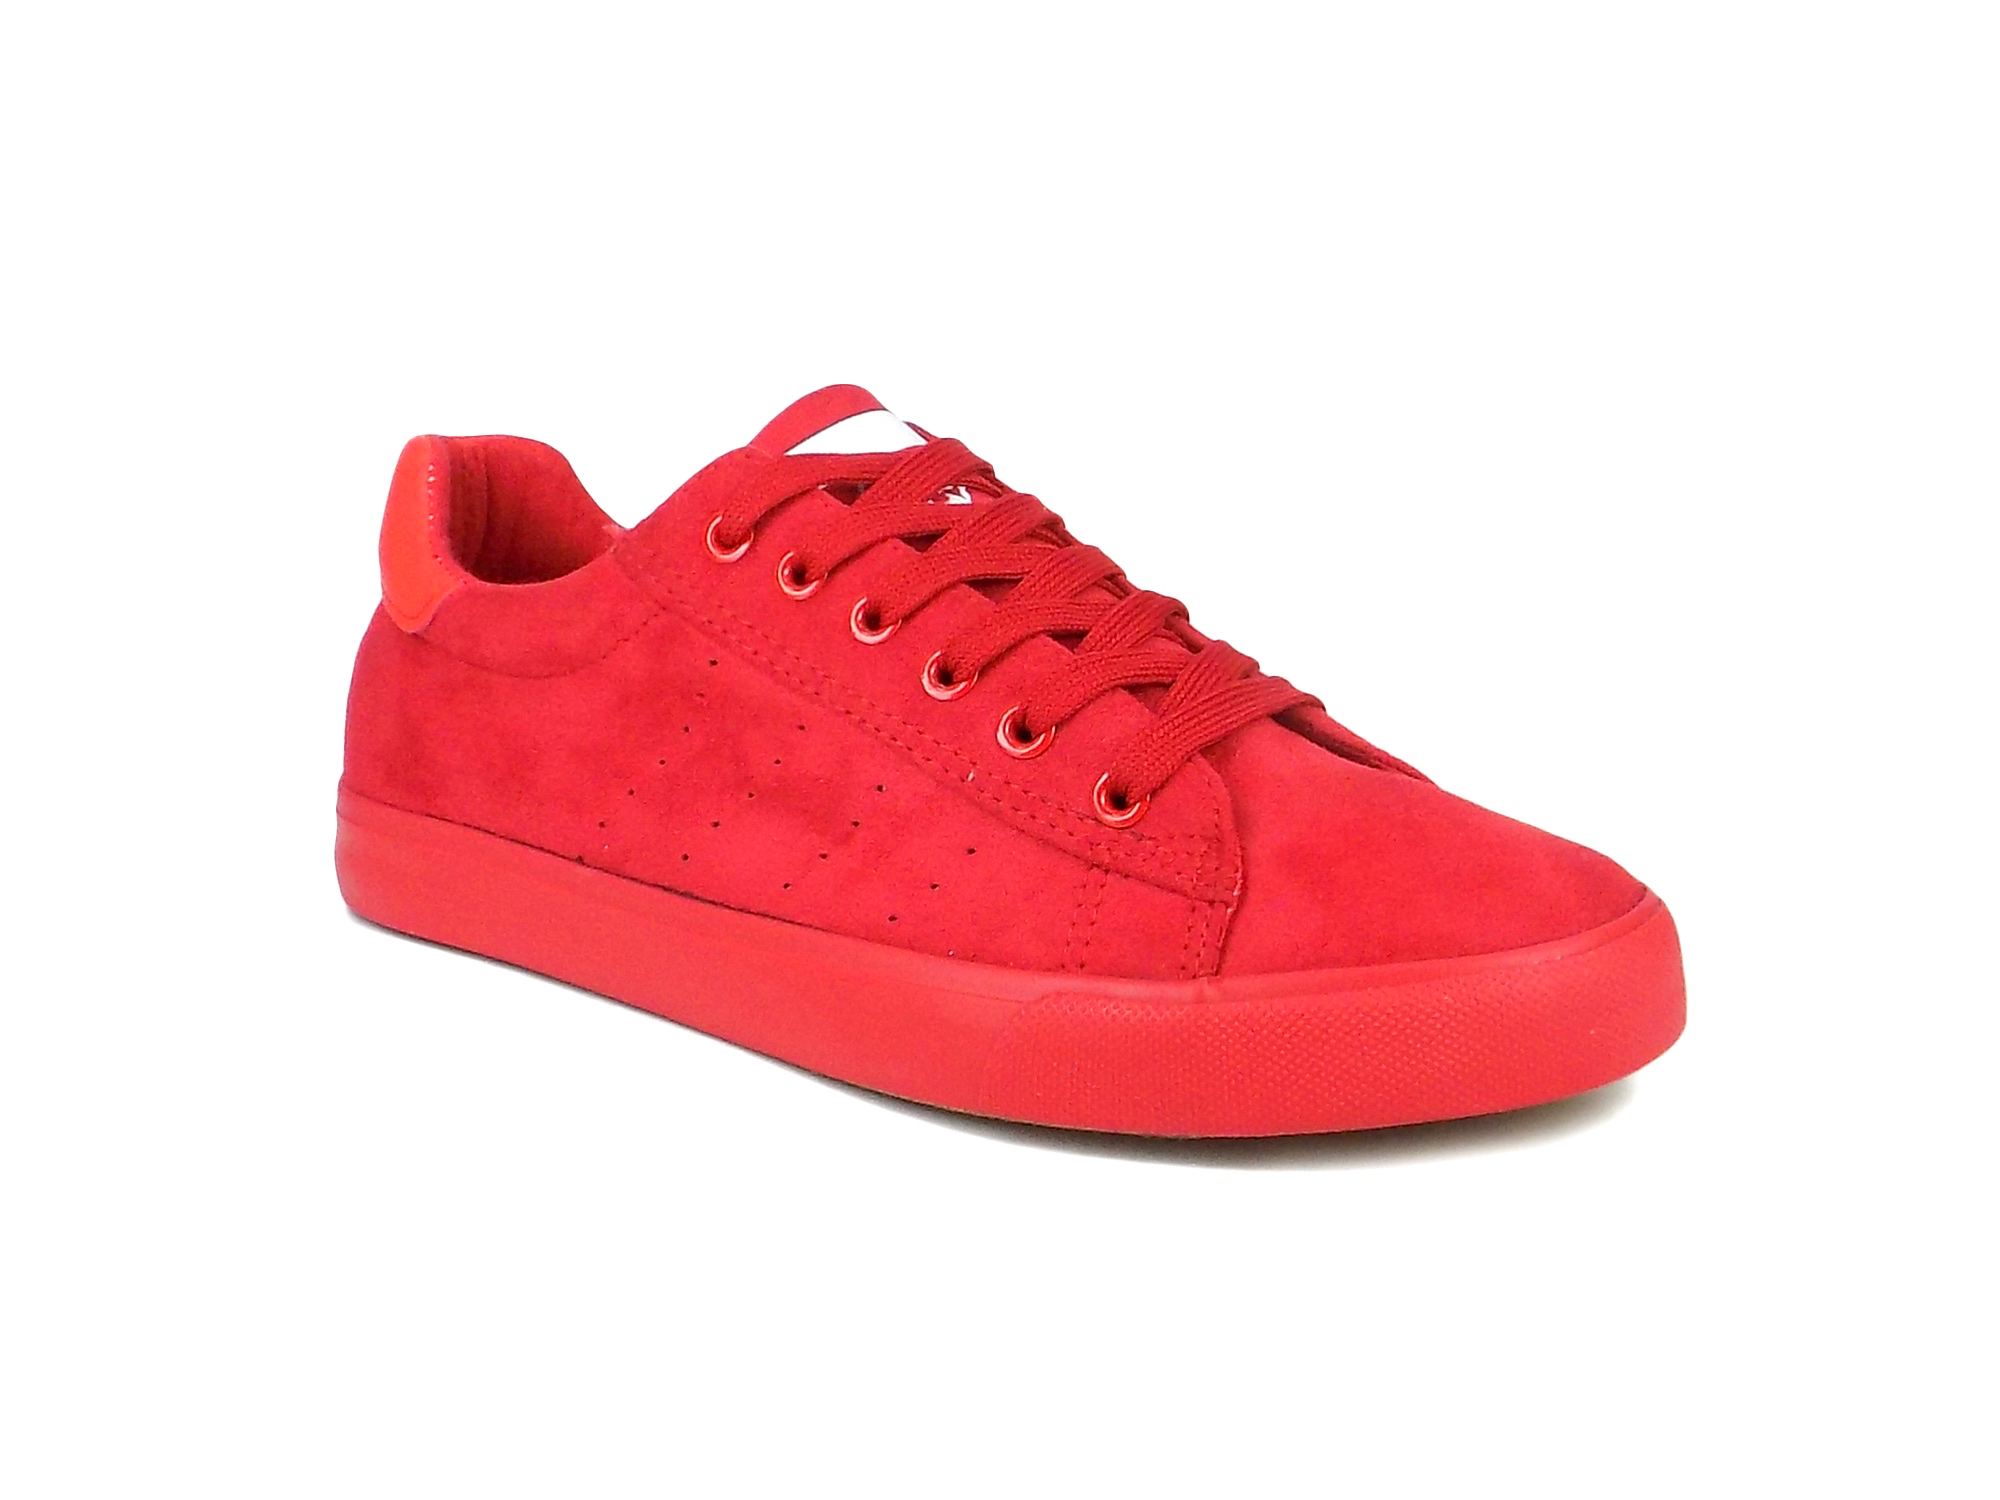 vantagesales Ripley Magnet Series Red Leatherette Casual Shoes 12